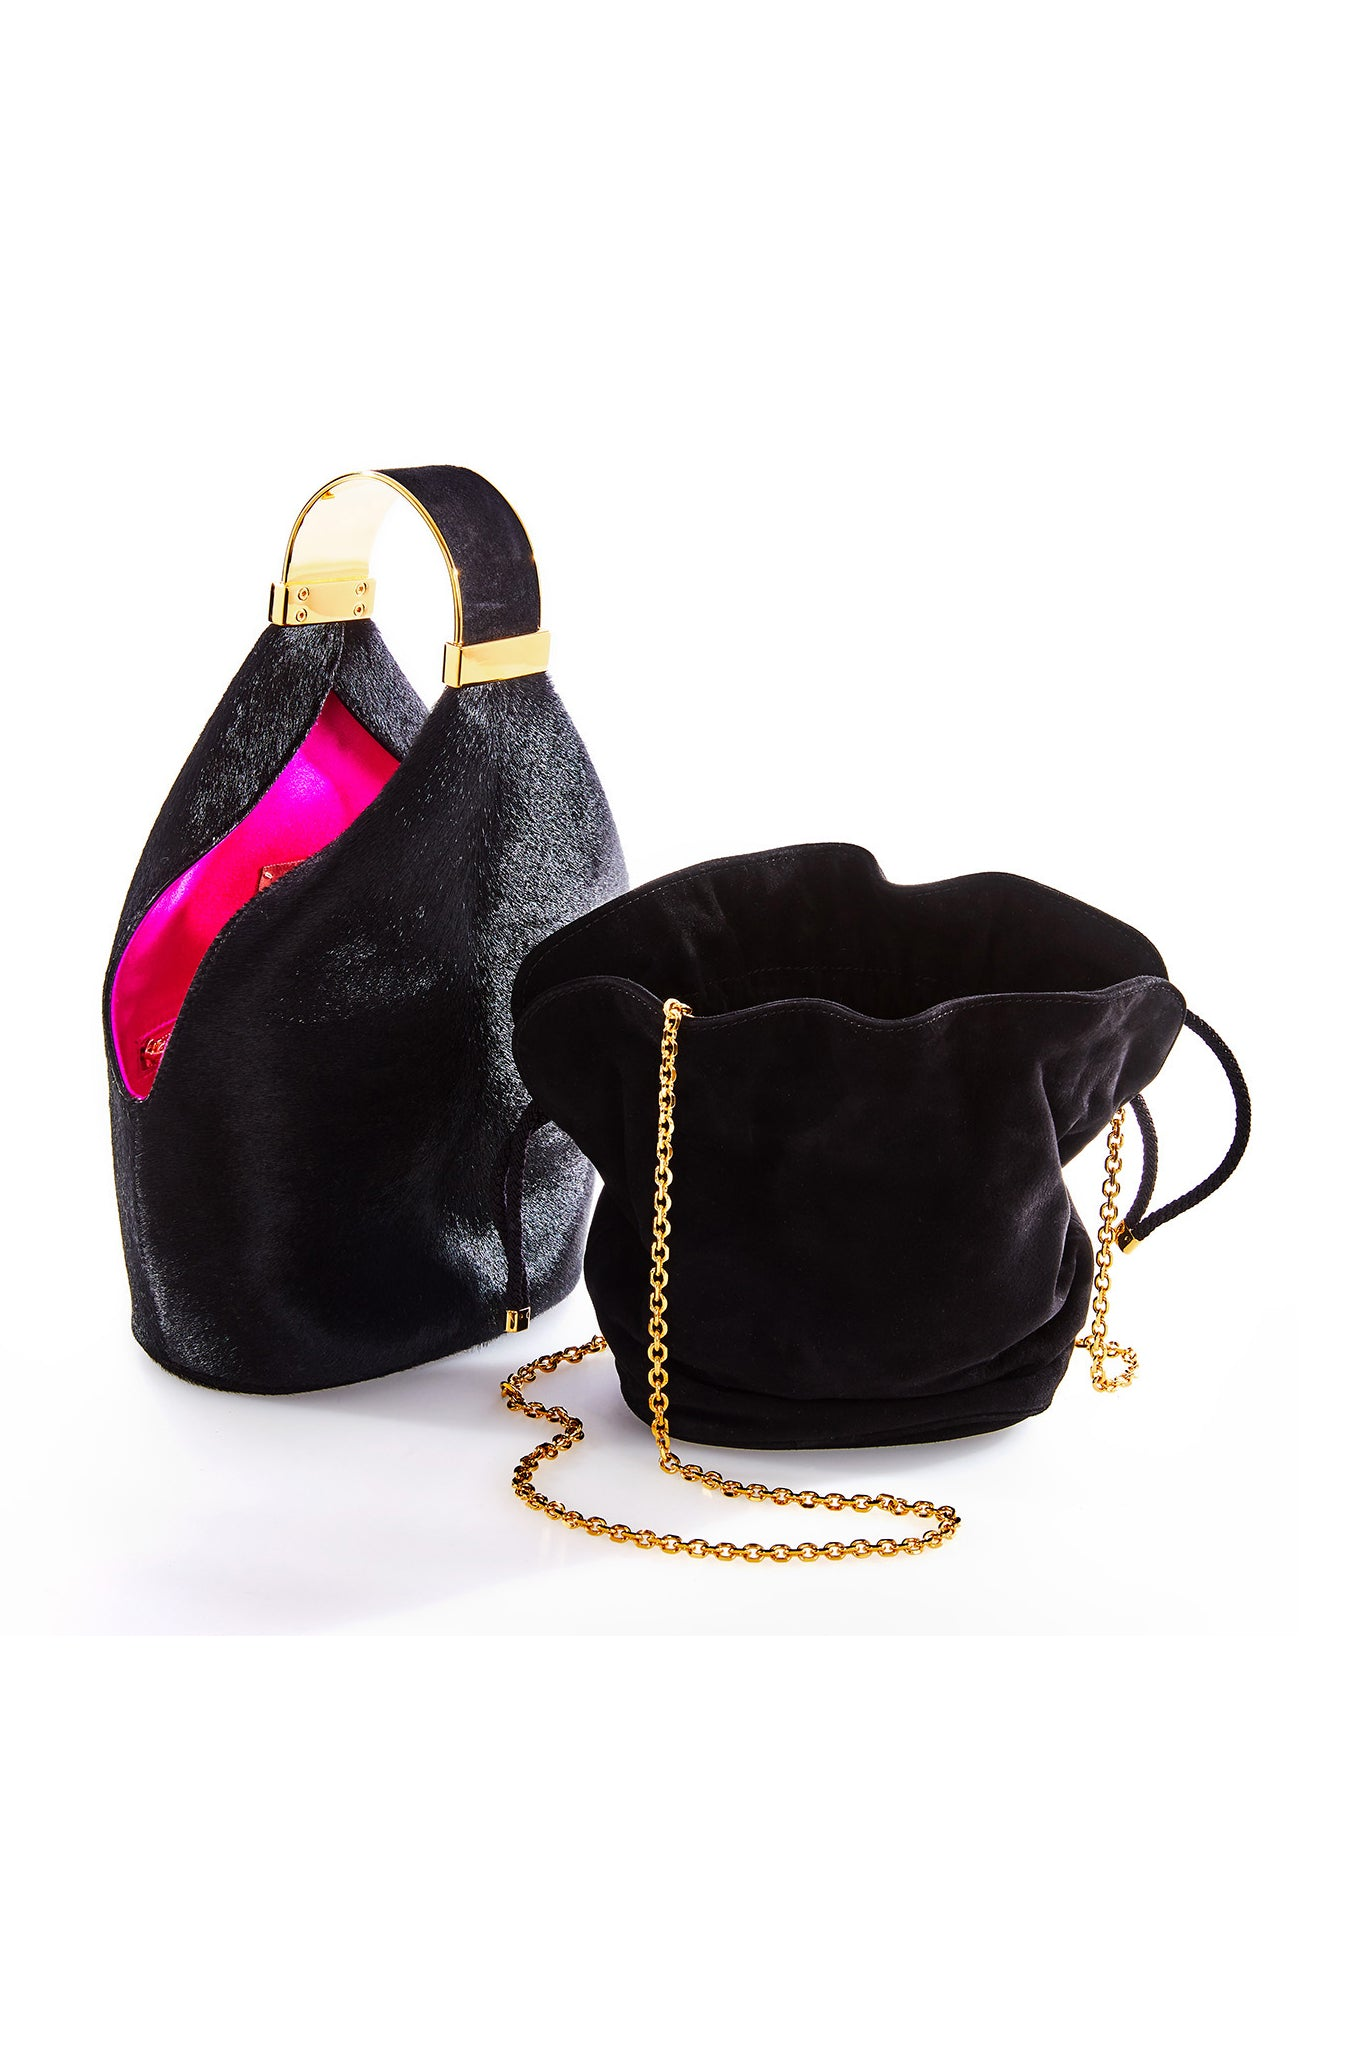 Kit Bracelet Bag in Black Calf Hair